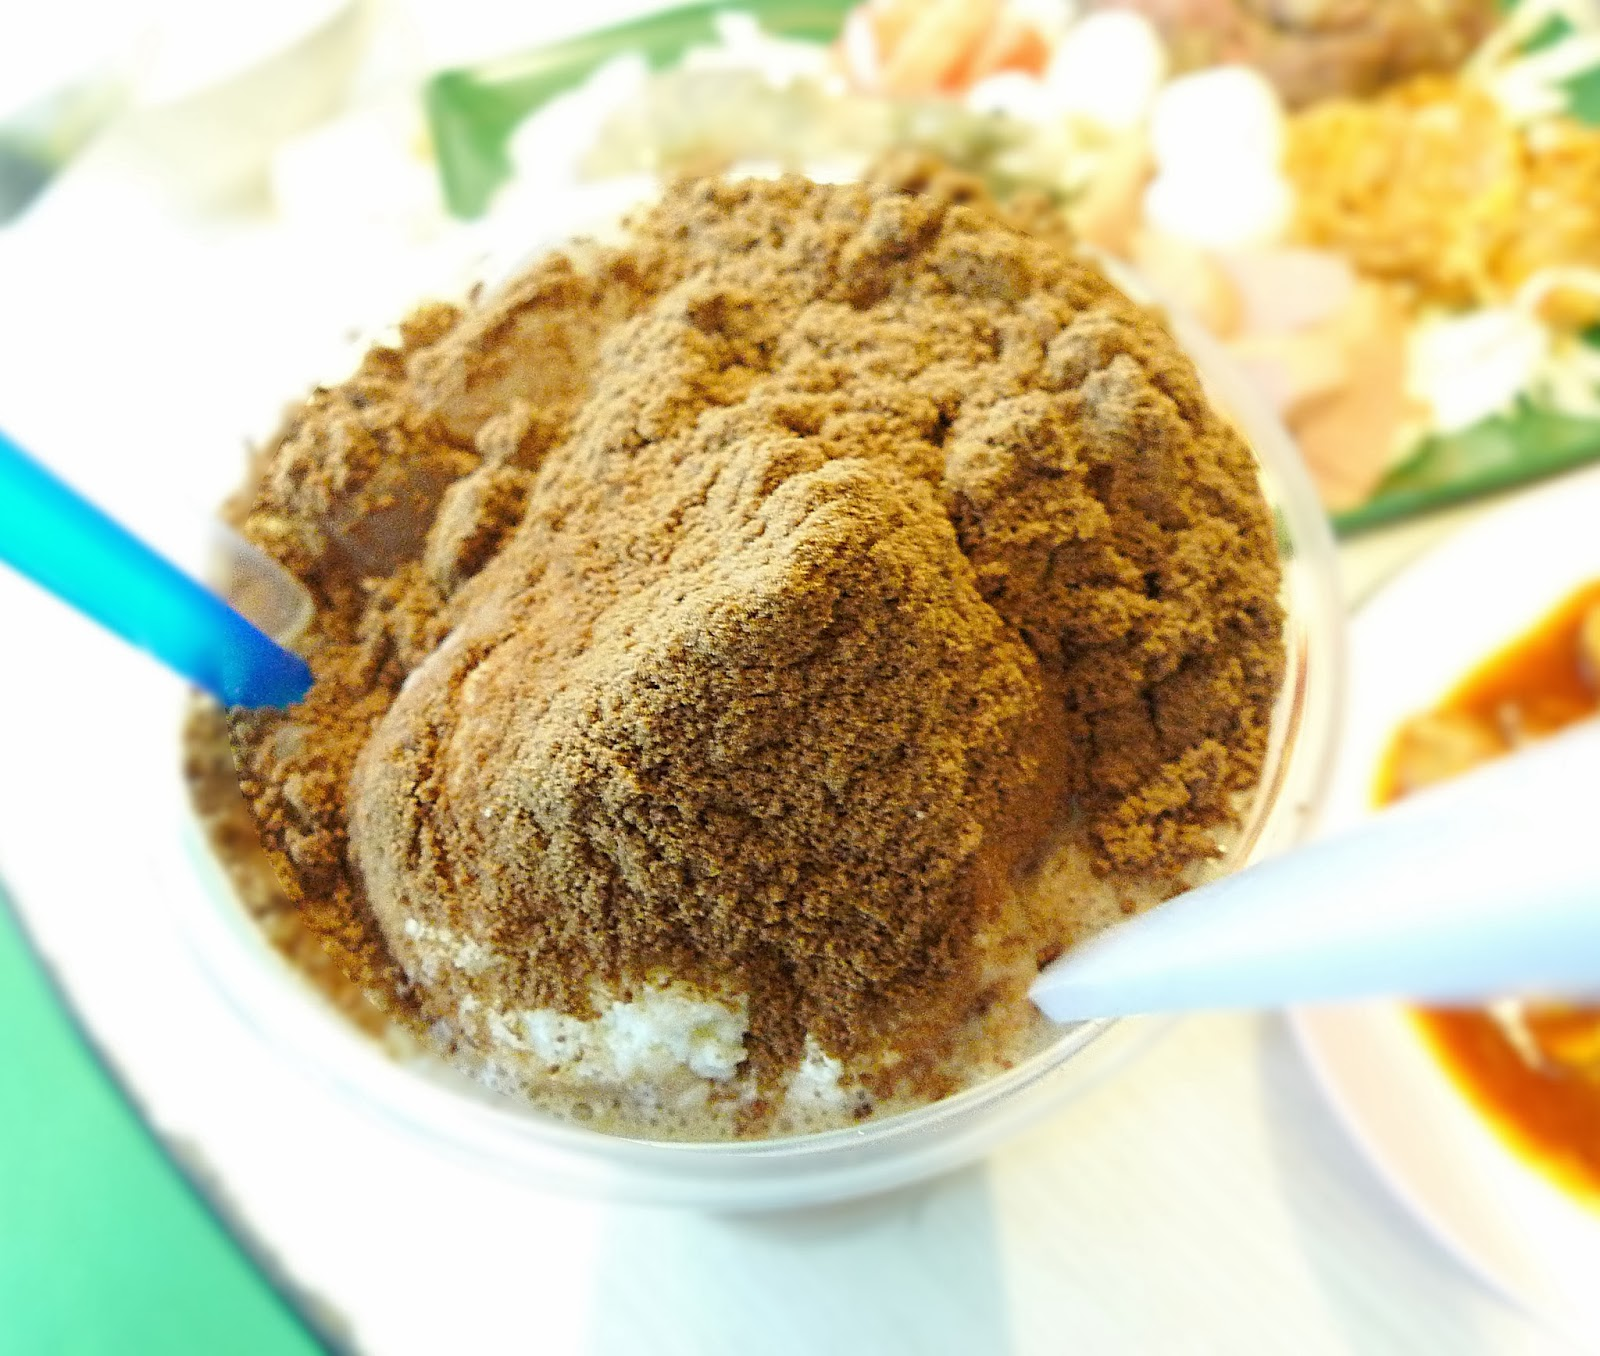 Milo godzilla with vanilla ice-cream